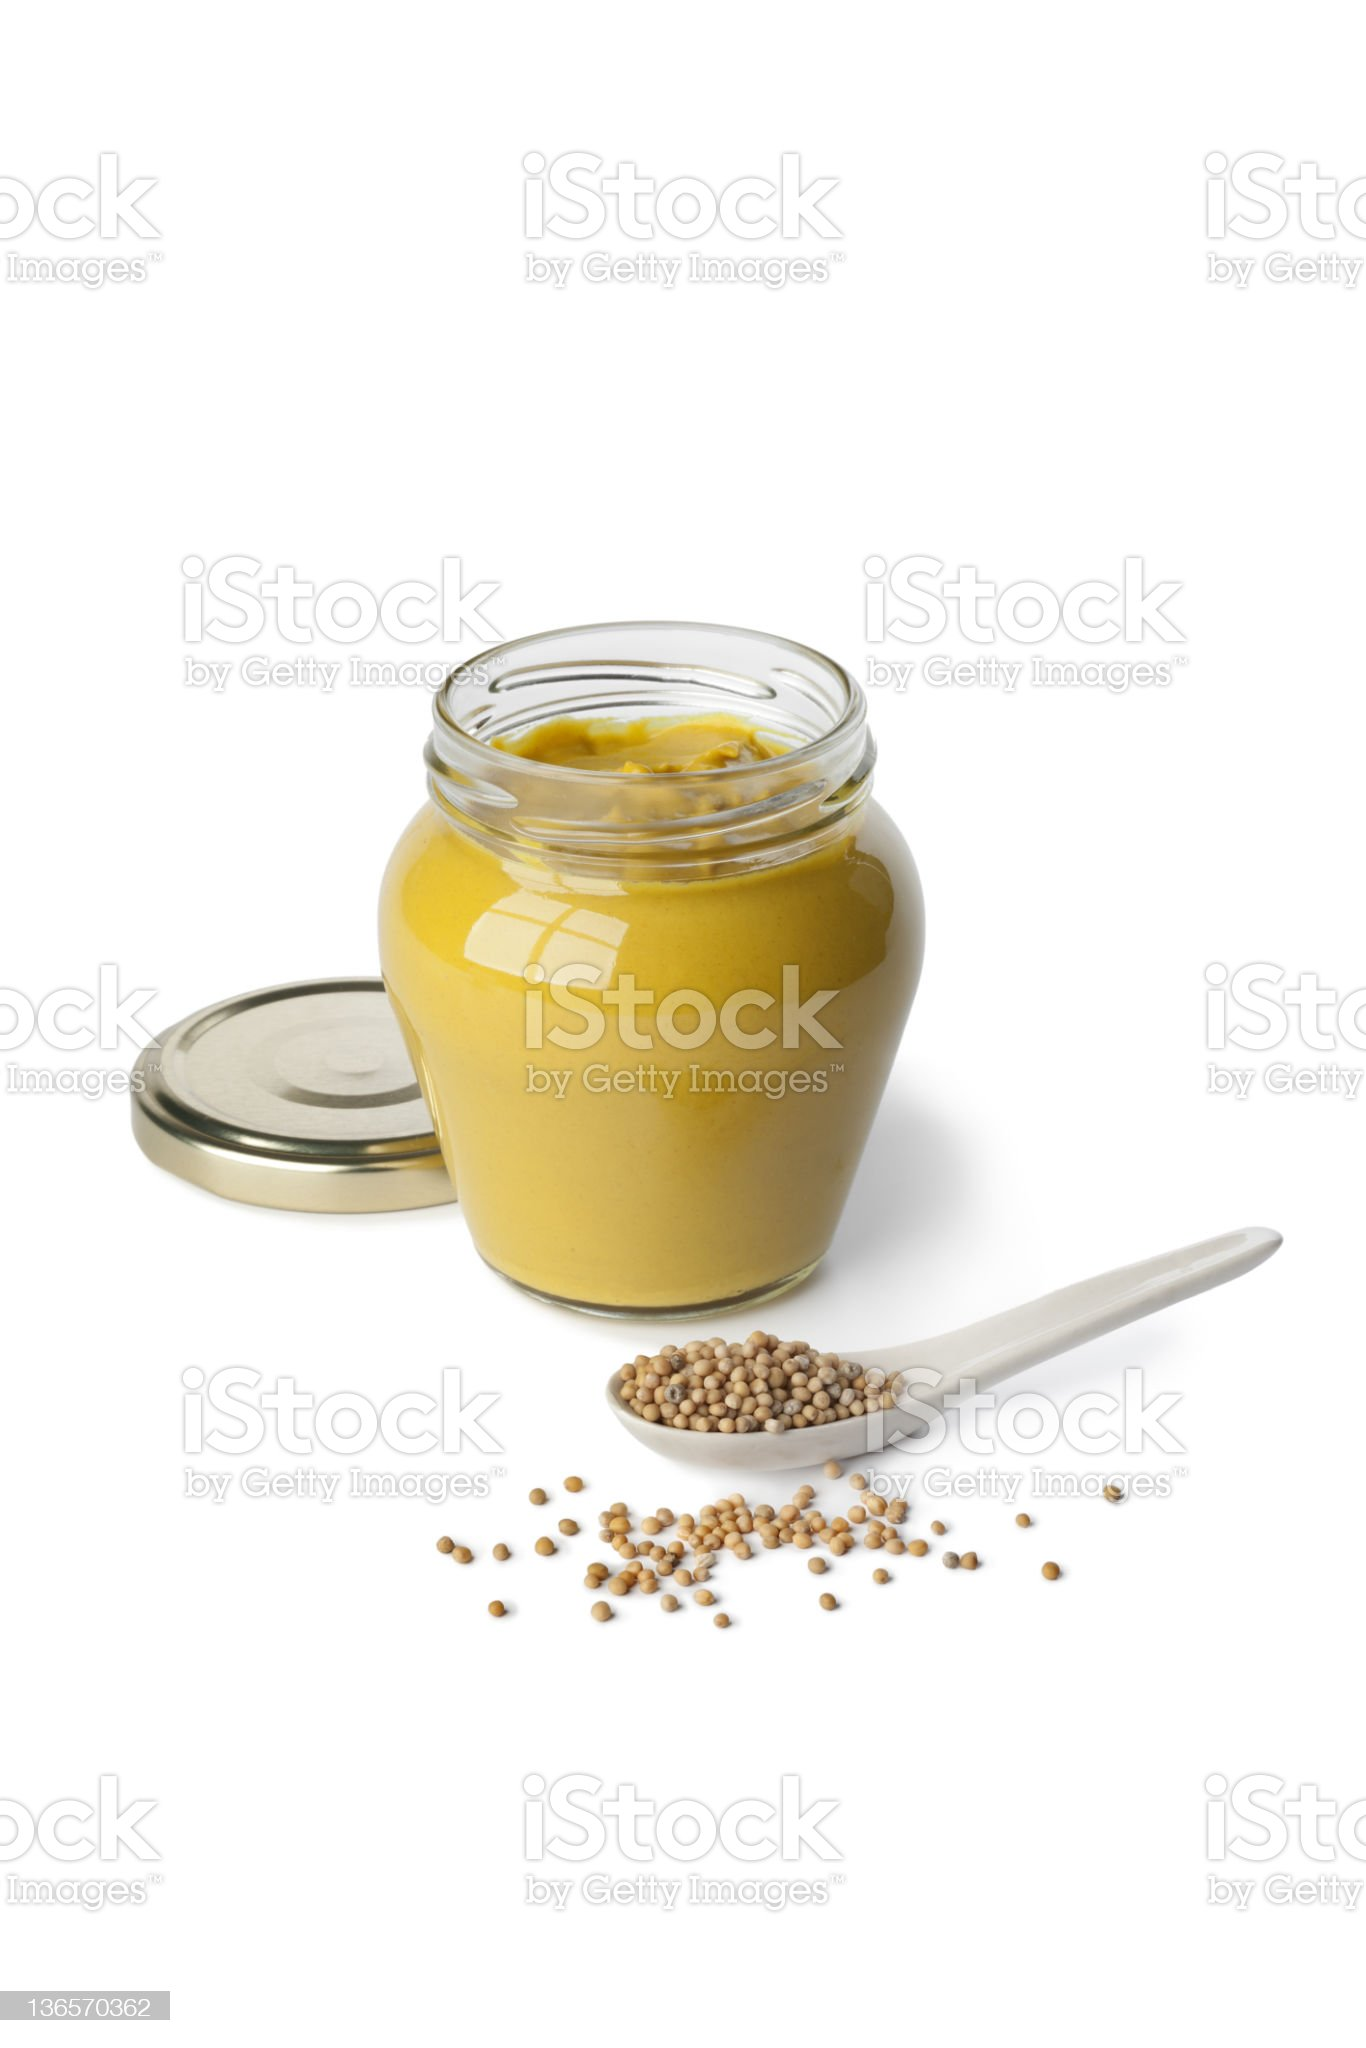 Mustard in a jar and seeds royalty-free stock photo